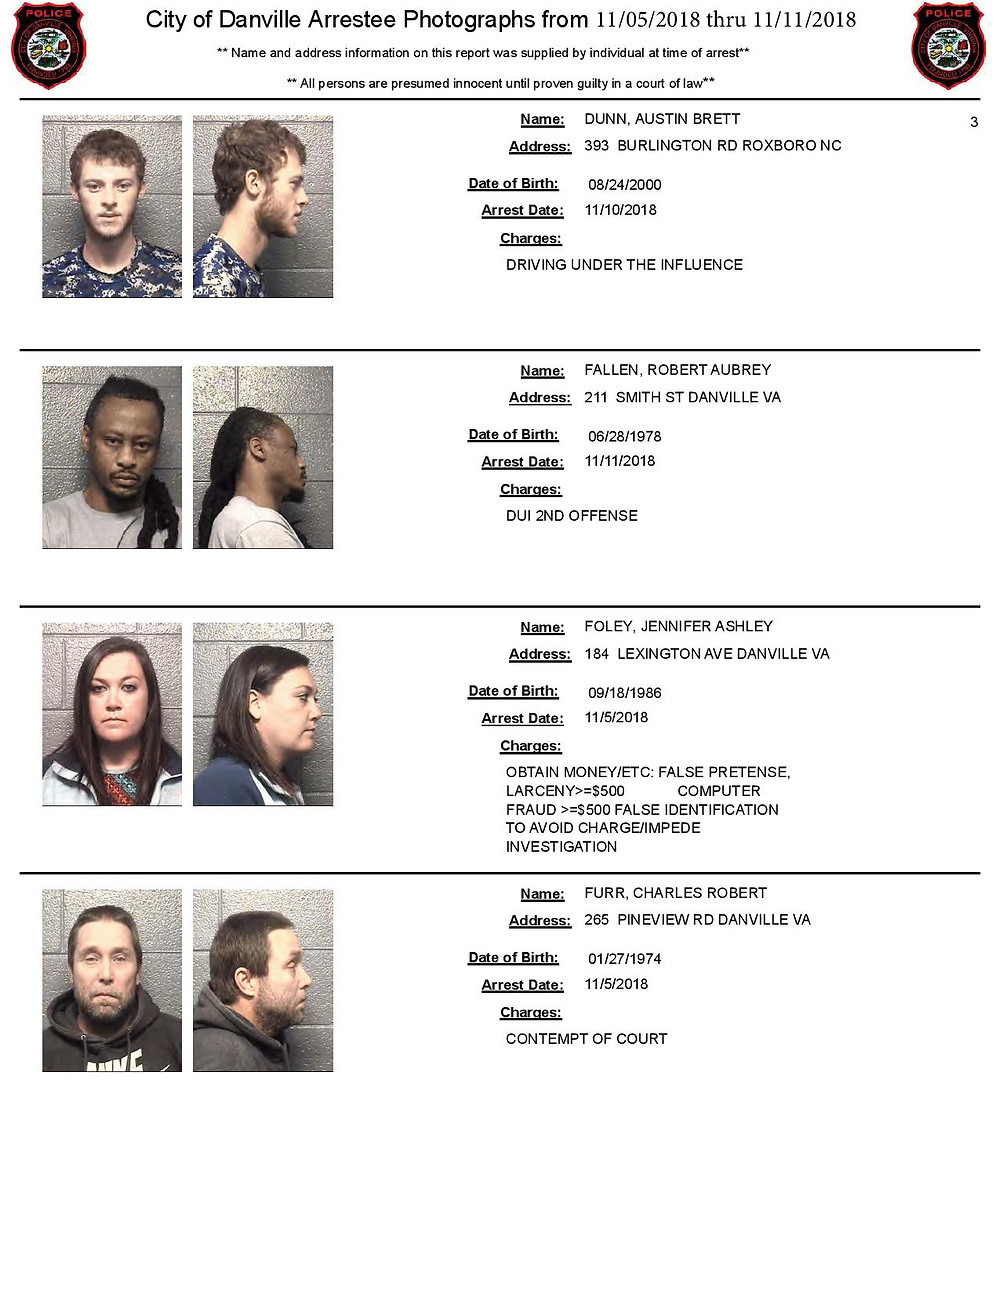 Danville Arrests & Mugshots November 2018